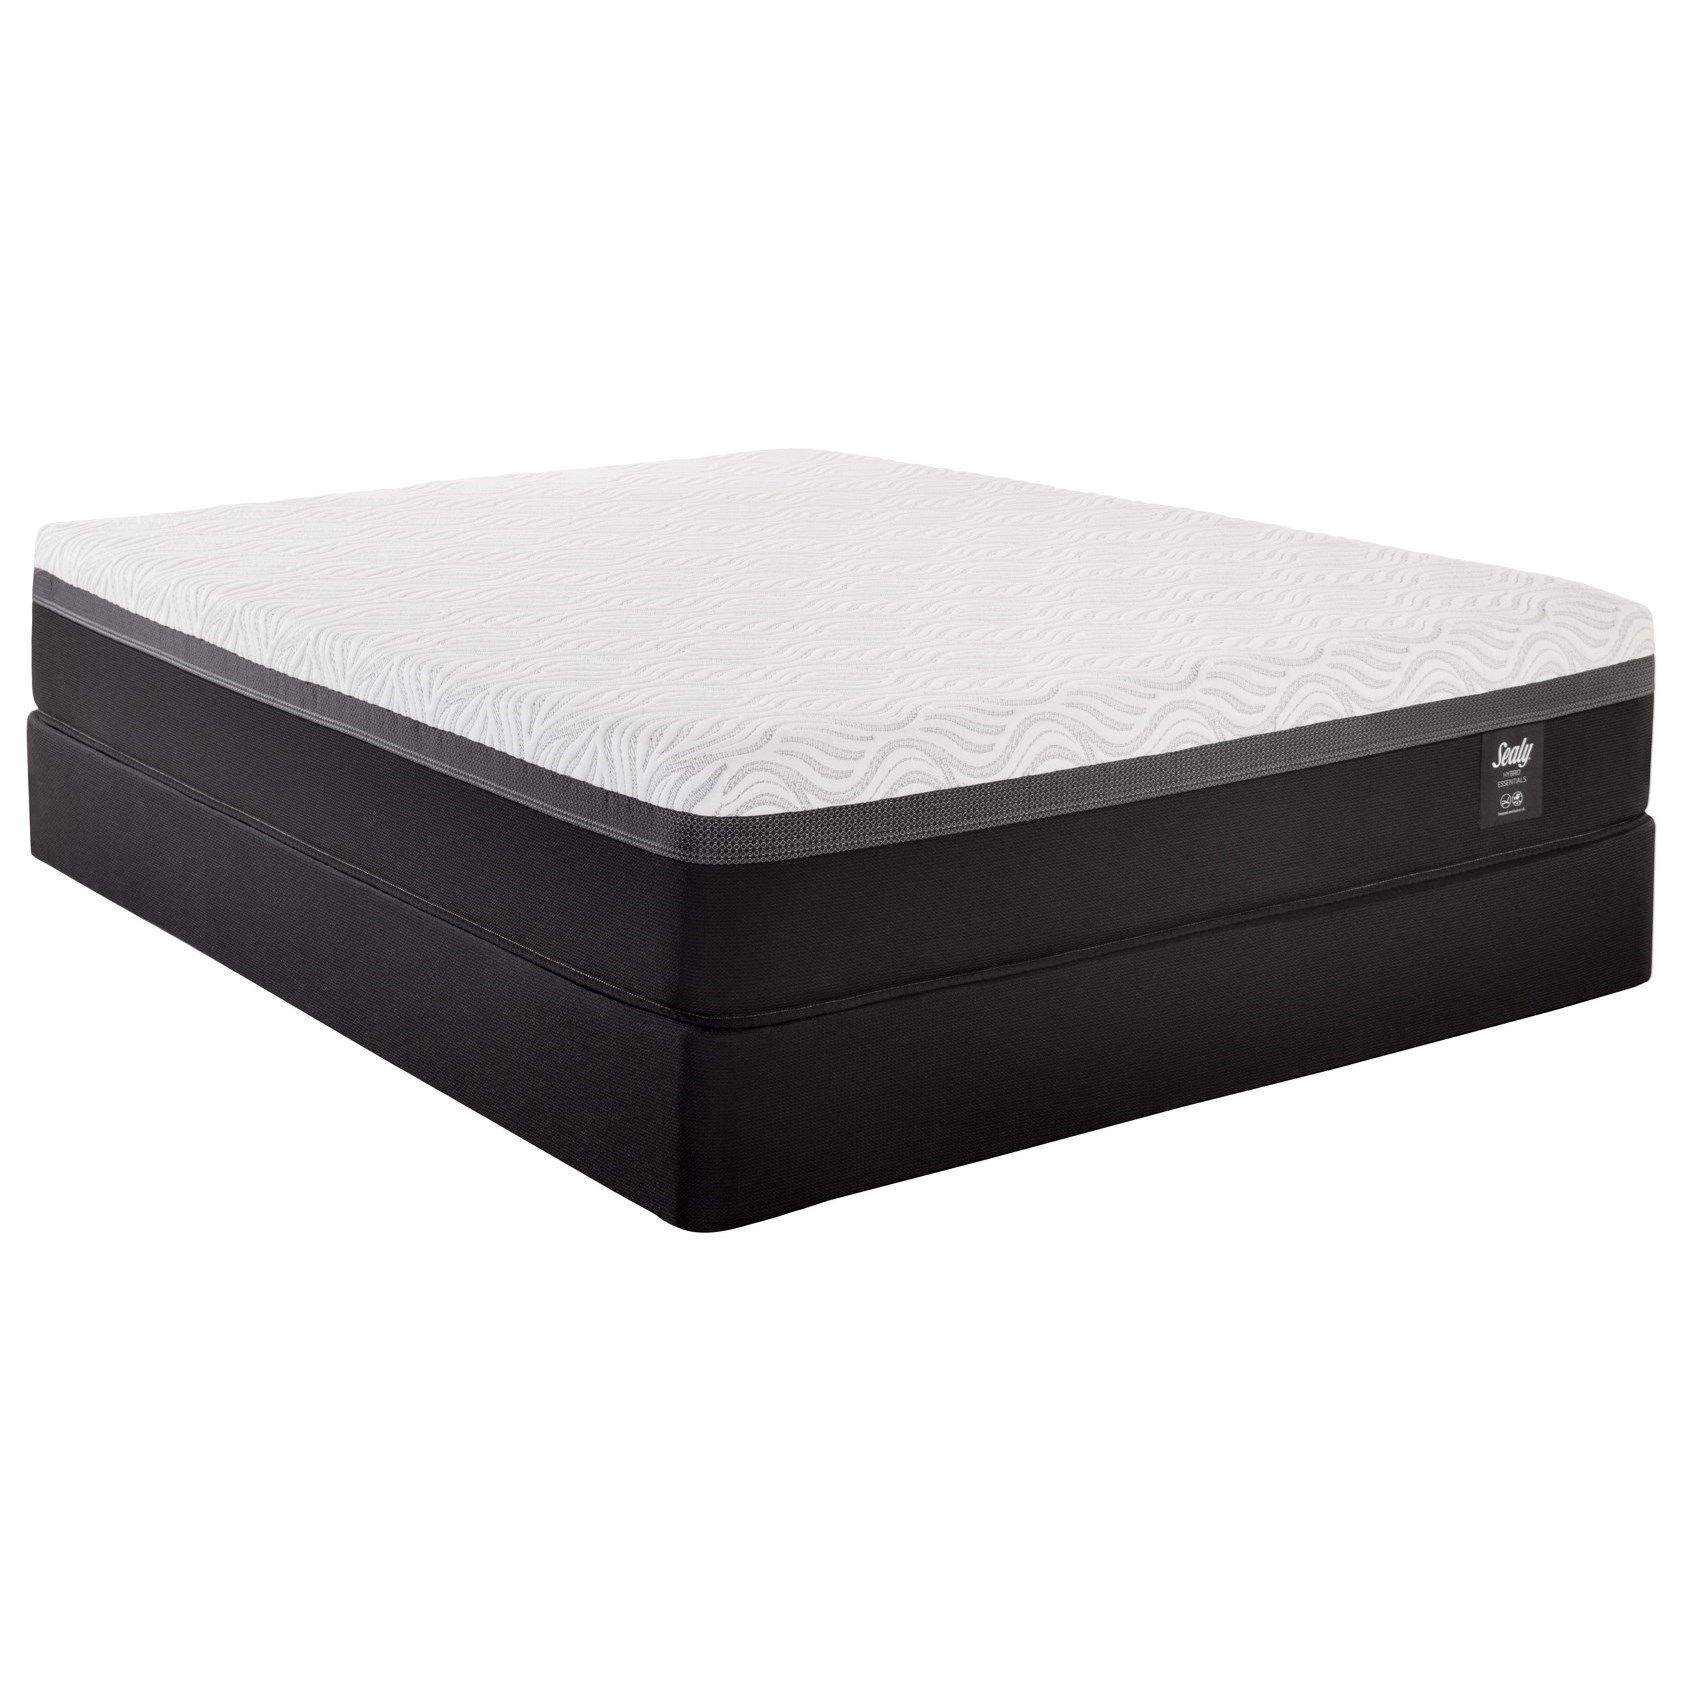 Trust II Queen Hybrid Mattress Set by Sealy at Rotmans